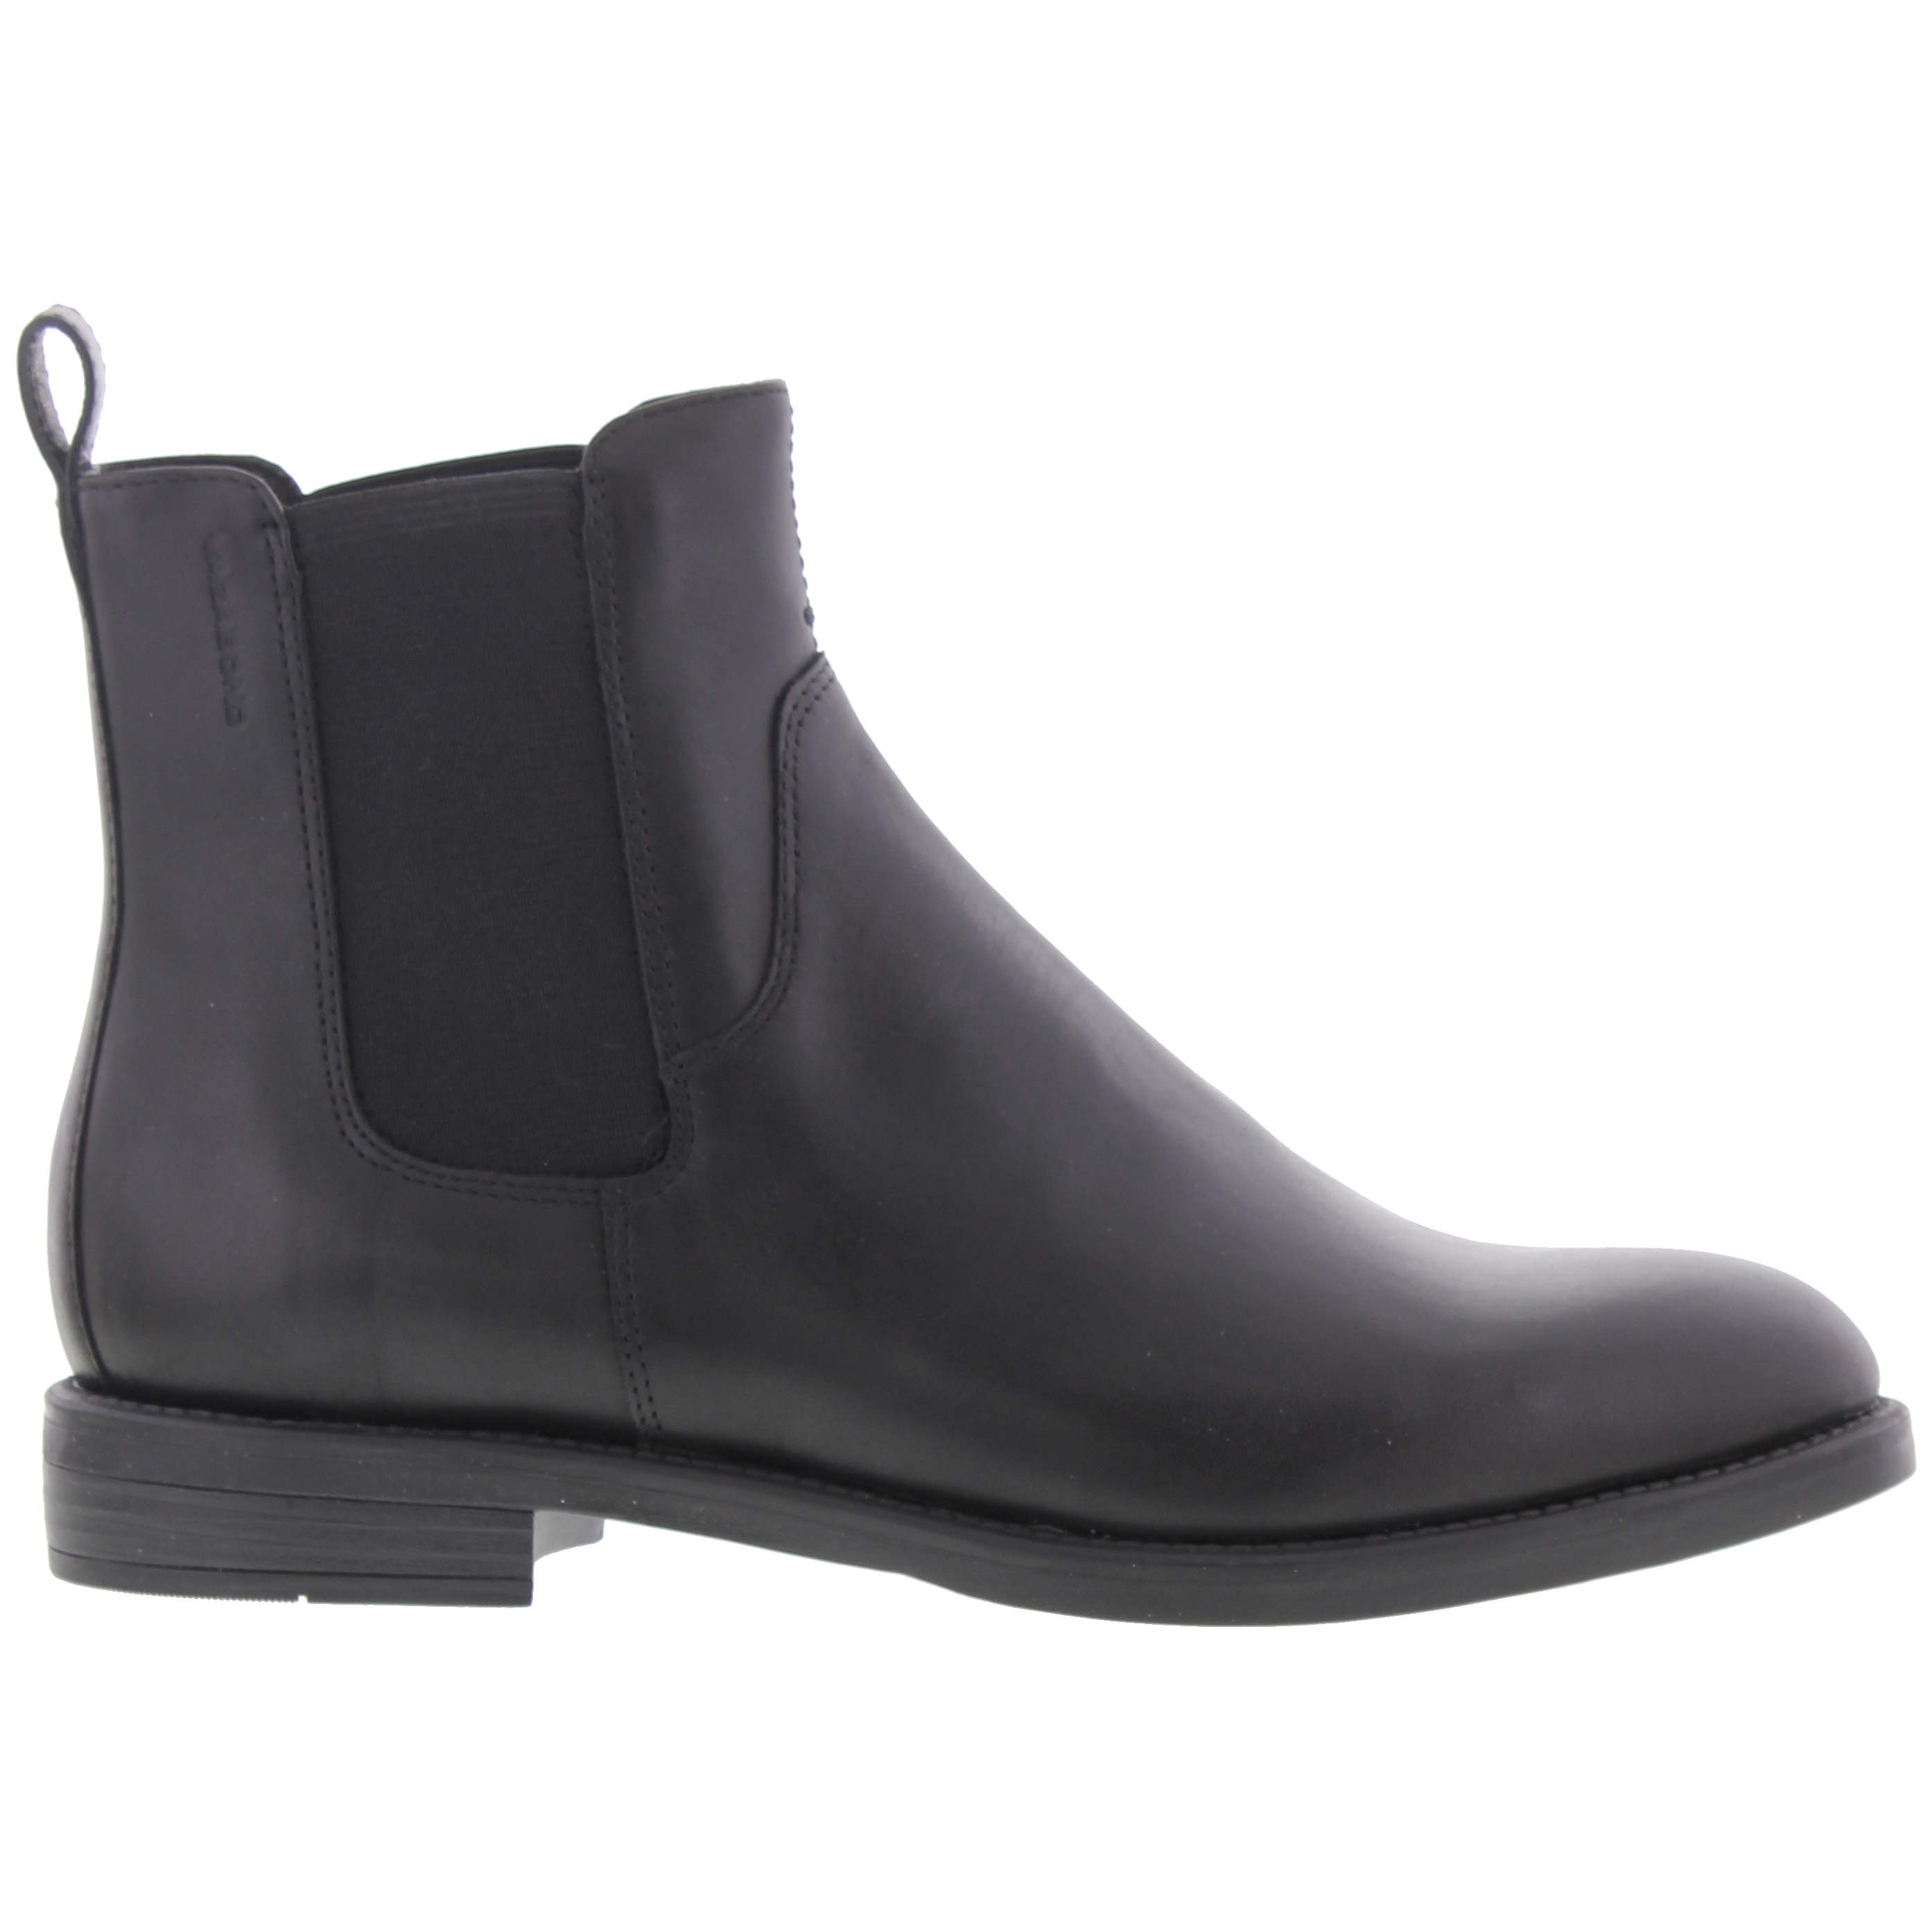 on sale a52a0 c19b0 Details zu Vagabond Amina Womens Ladies Black Brown Leather Chelsea Ankle  Boots Size 3-7